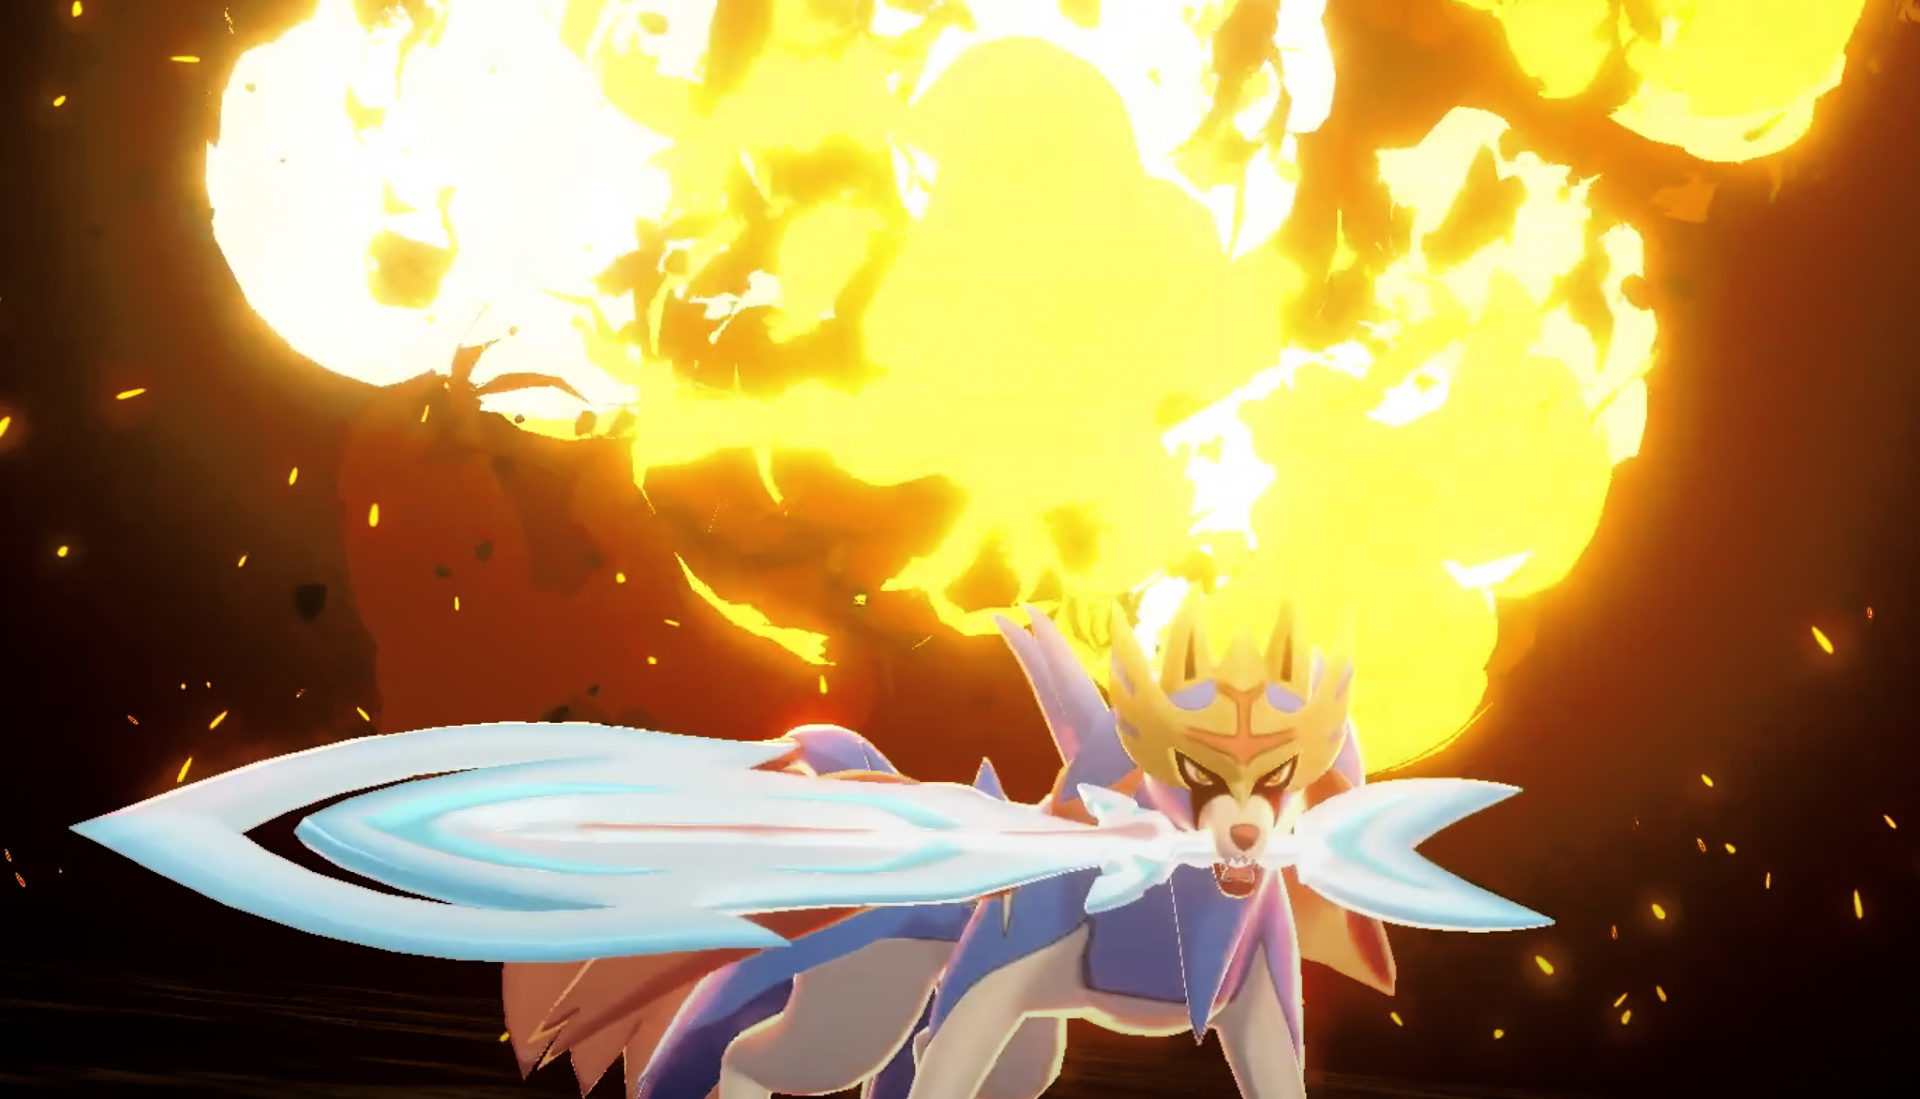 Screenshot of Pokemon Sword & Shield Legendary Zacian attacking.